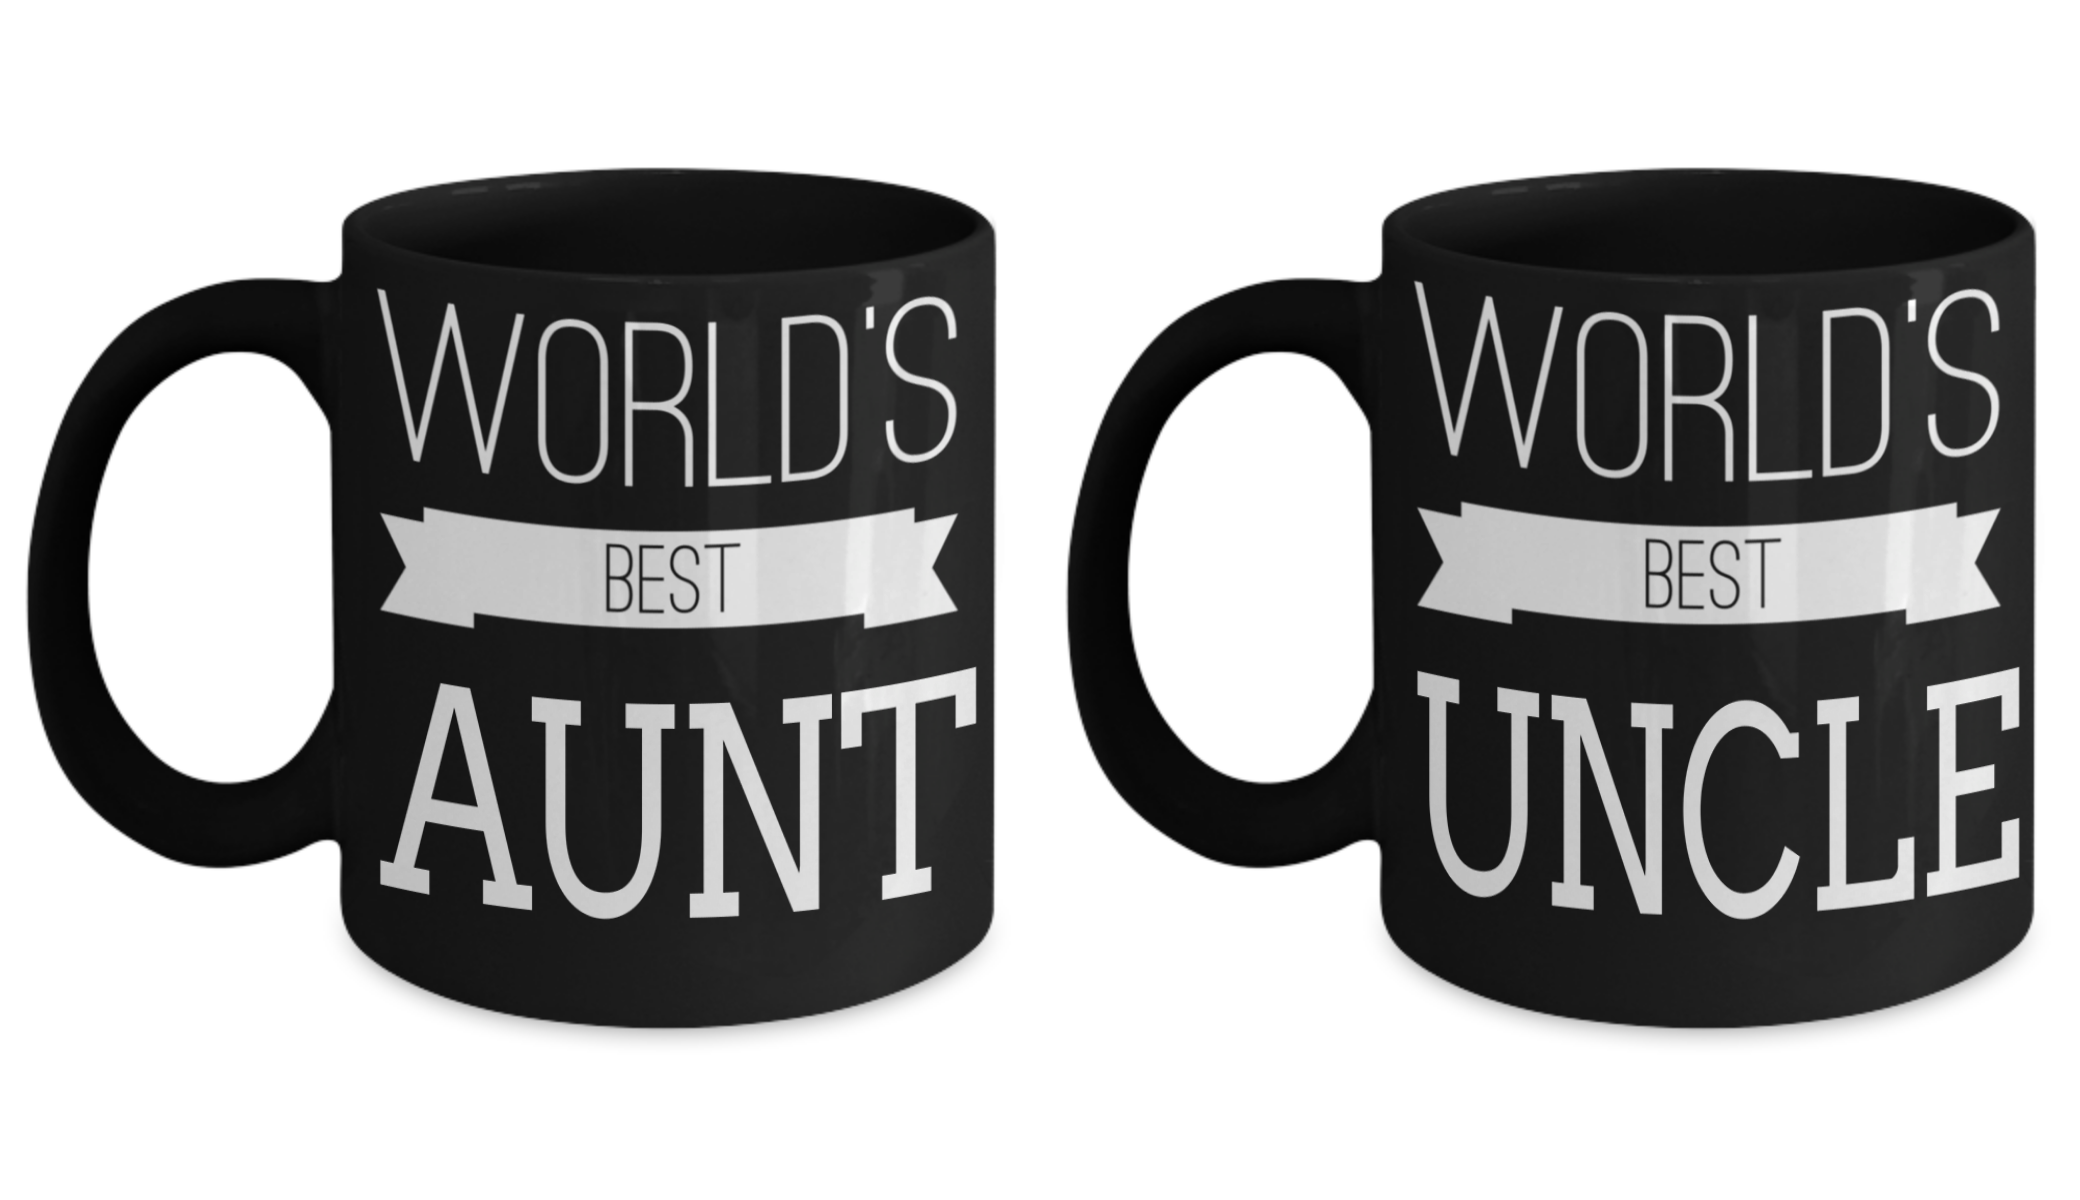 Gifts For Uncle From Niece Gifts For Your Aunt Gift Ideas